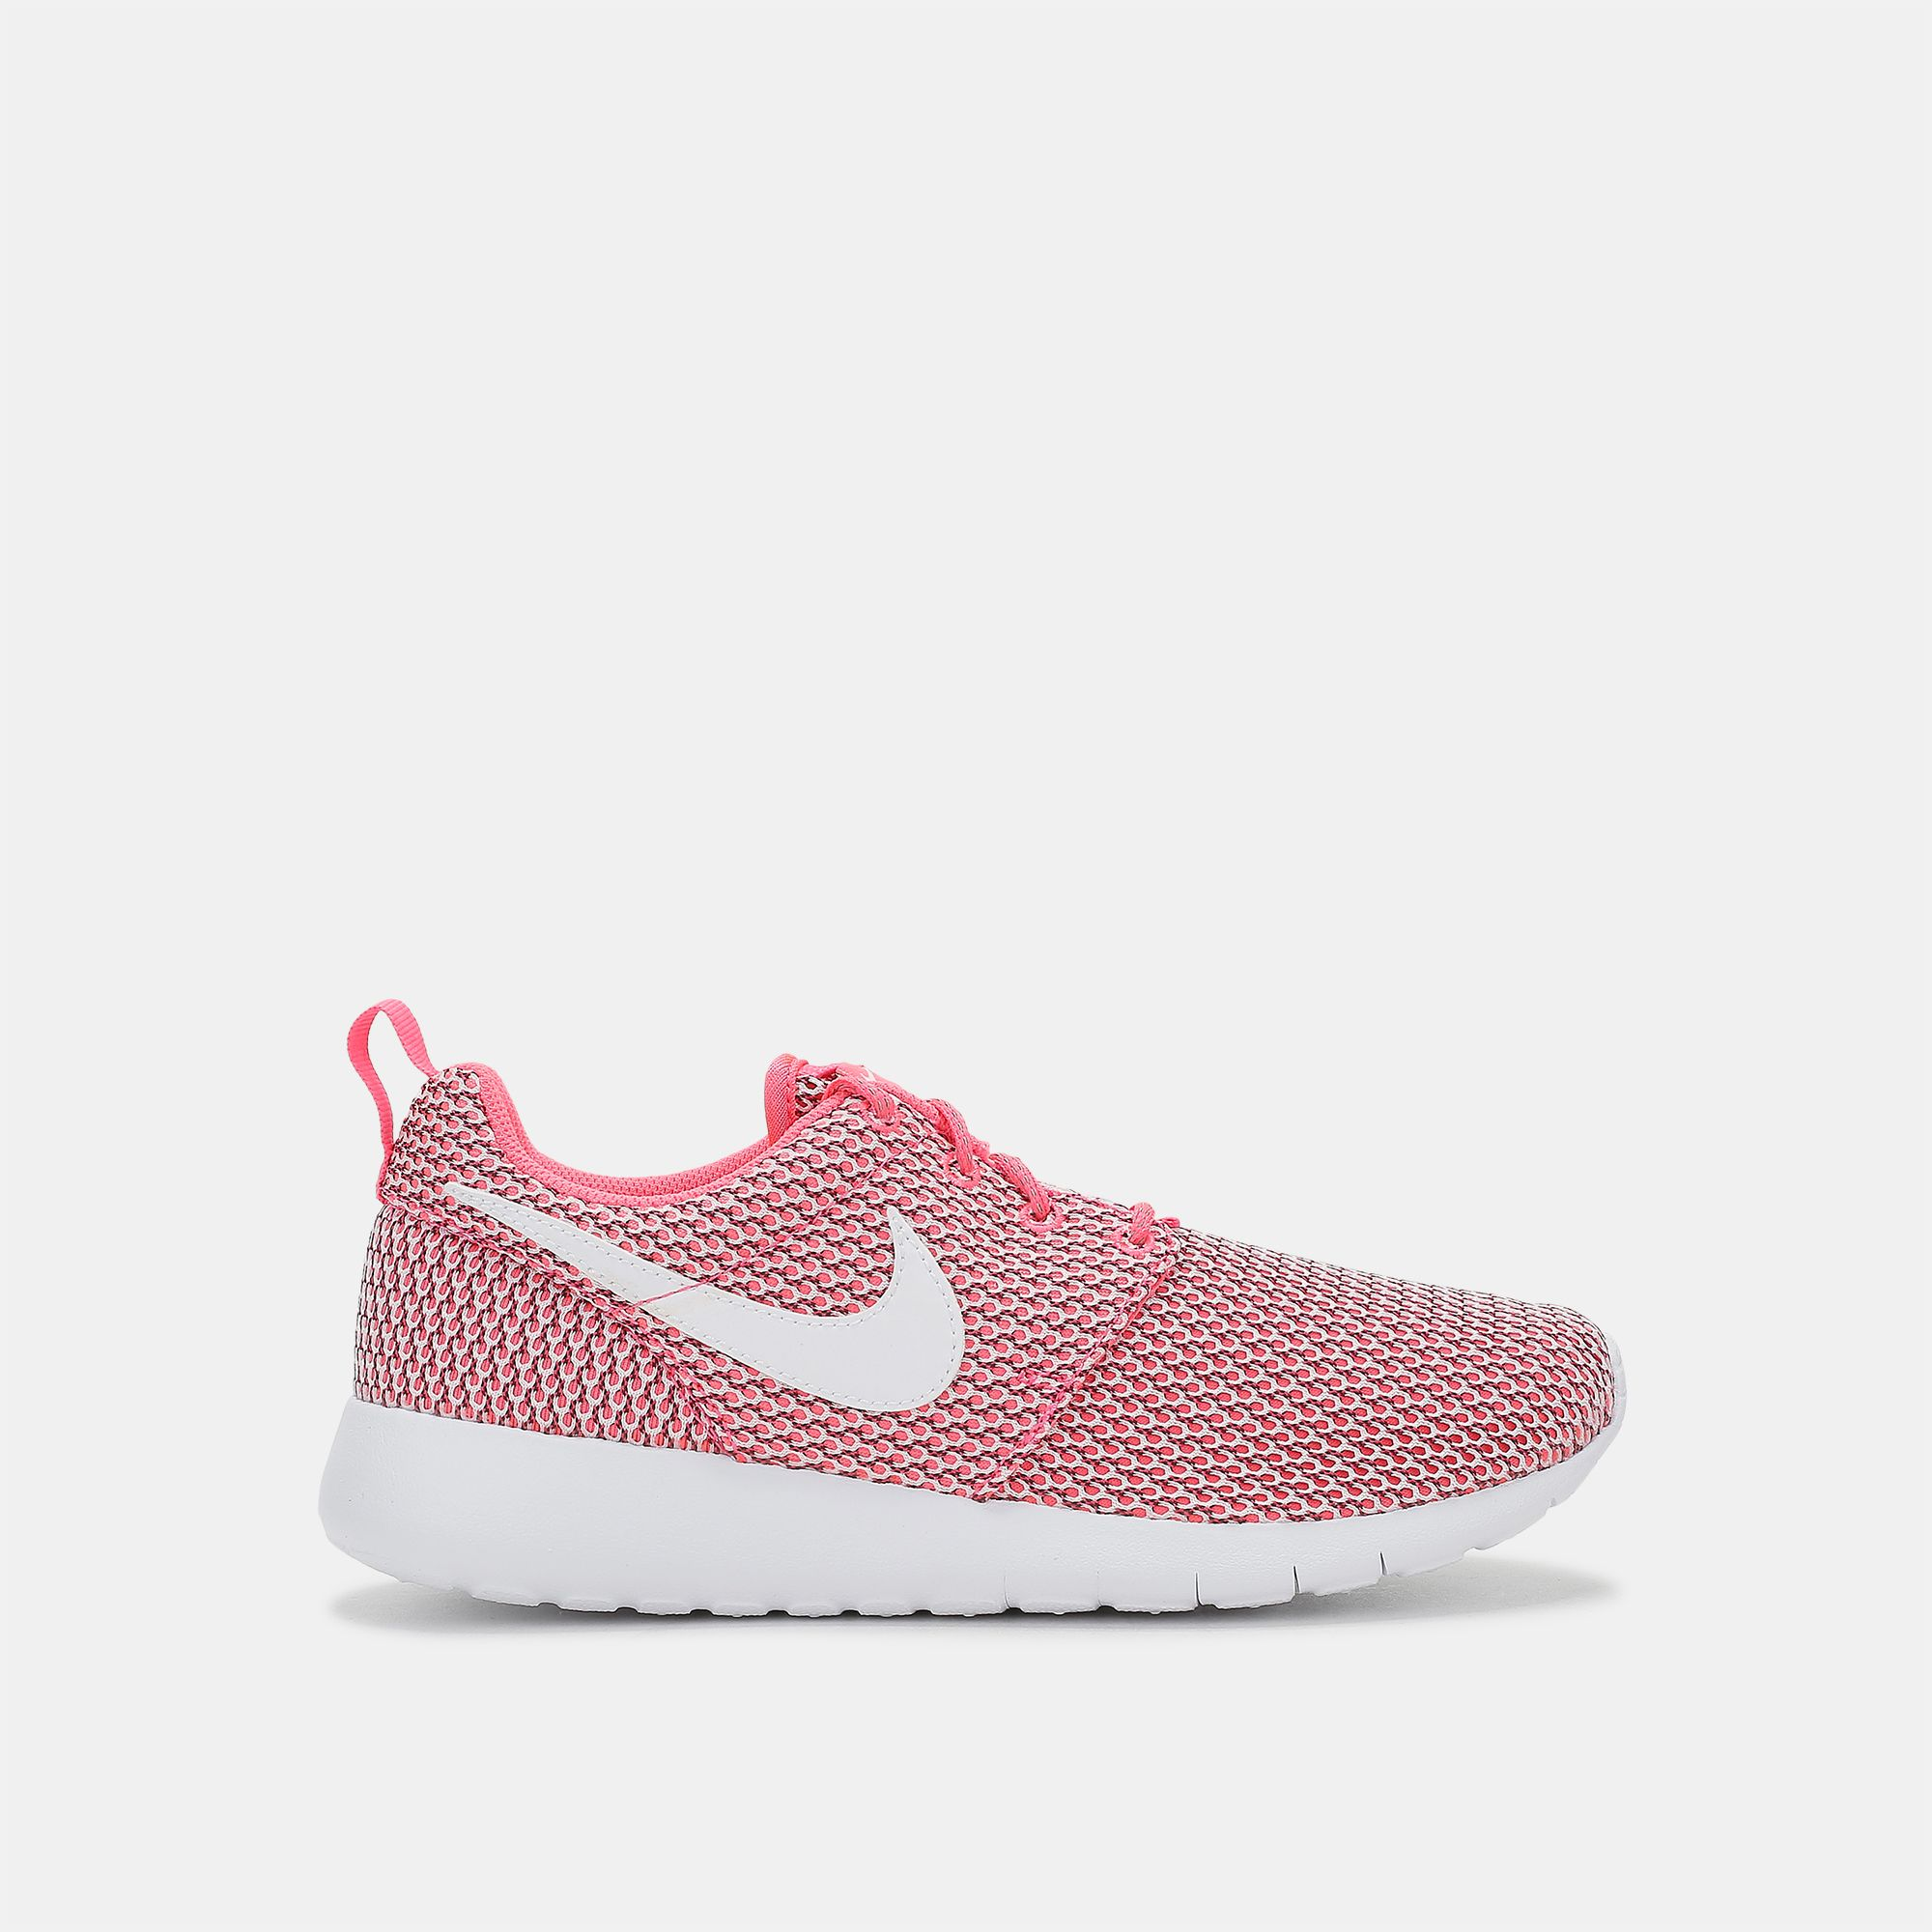 huge discount 4f703 b1a55 Nike Kids' Roshe One (Grade School) Shoe | Sneakers | Shoes ...